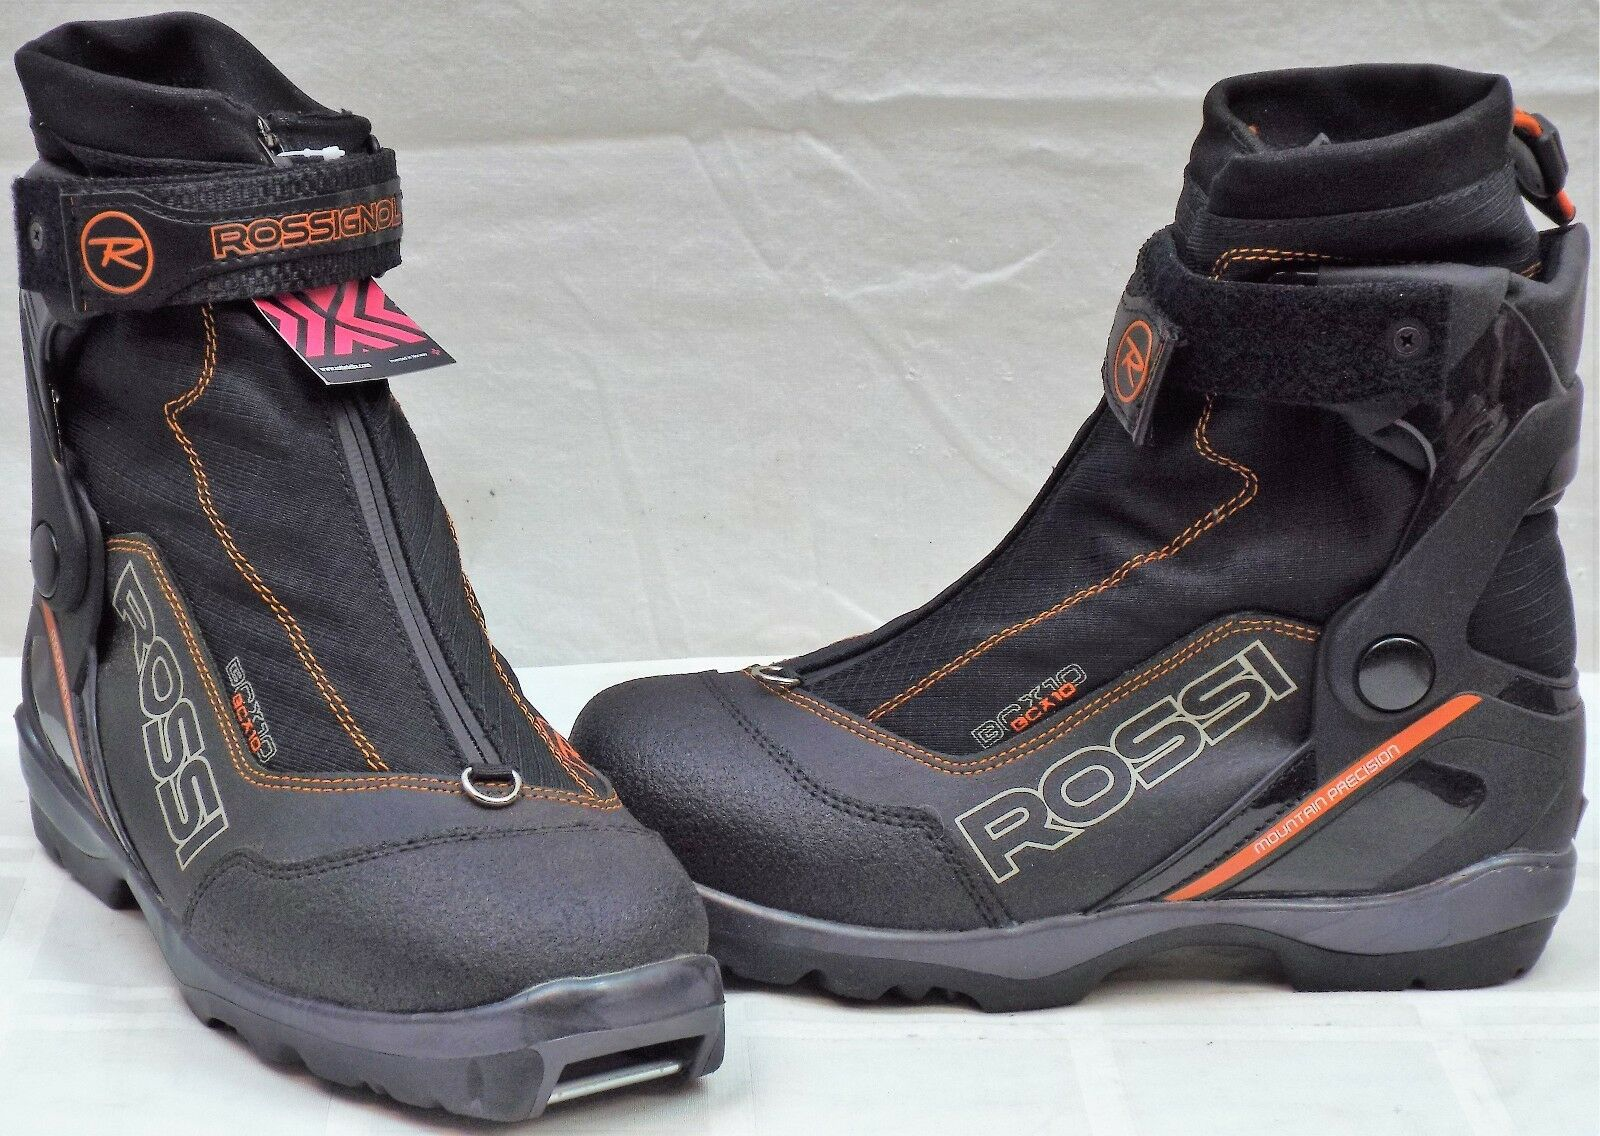 Rossignol BC X10 New Men's Cross  Country Ski Boots Size 41.0 Eu 8.0 US  on sale